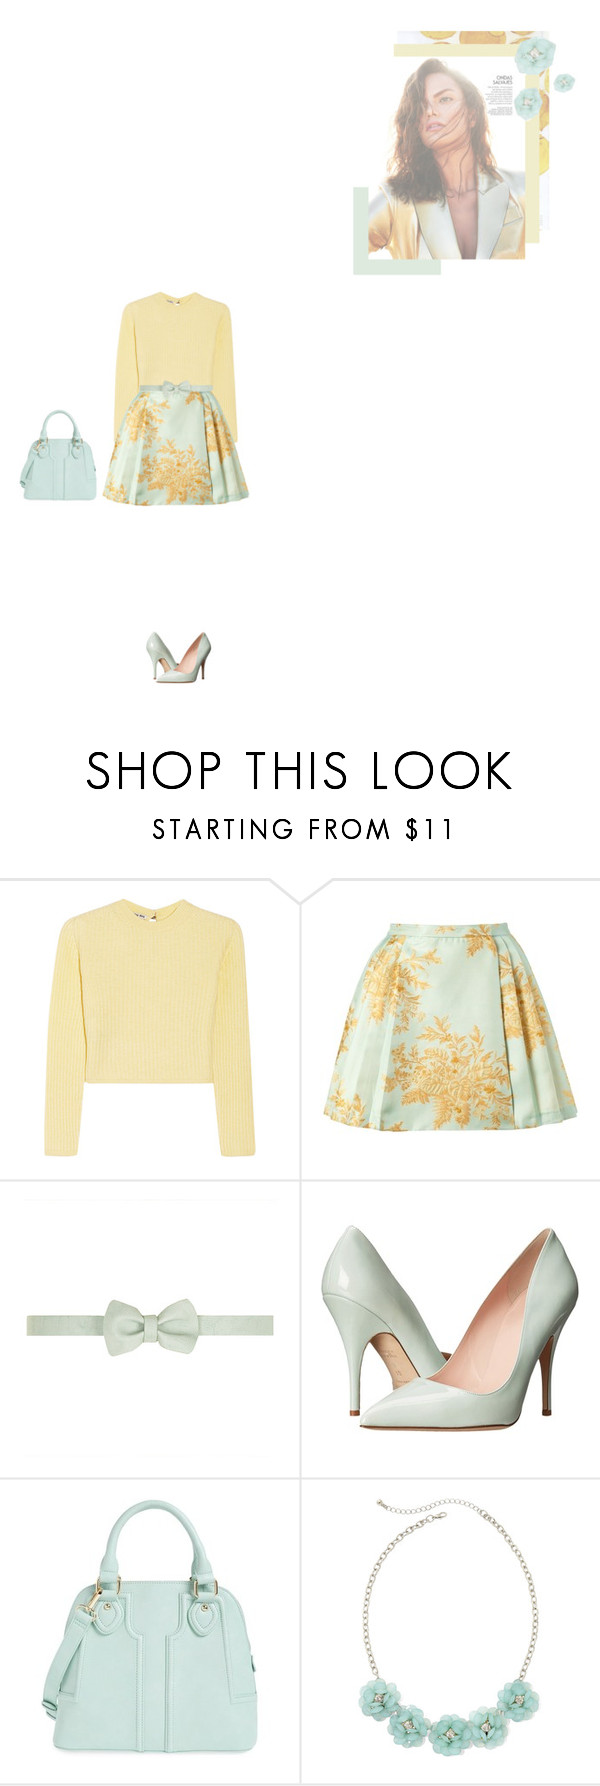 """""""Sunkissed Mint"""" by yuelle ❤ liked on Polyvore featuring Miu Miu, Zimmermann, Dorothy Perkins, Kate Spade, Sole Society and Decree"""